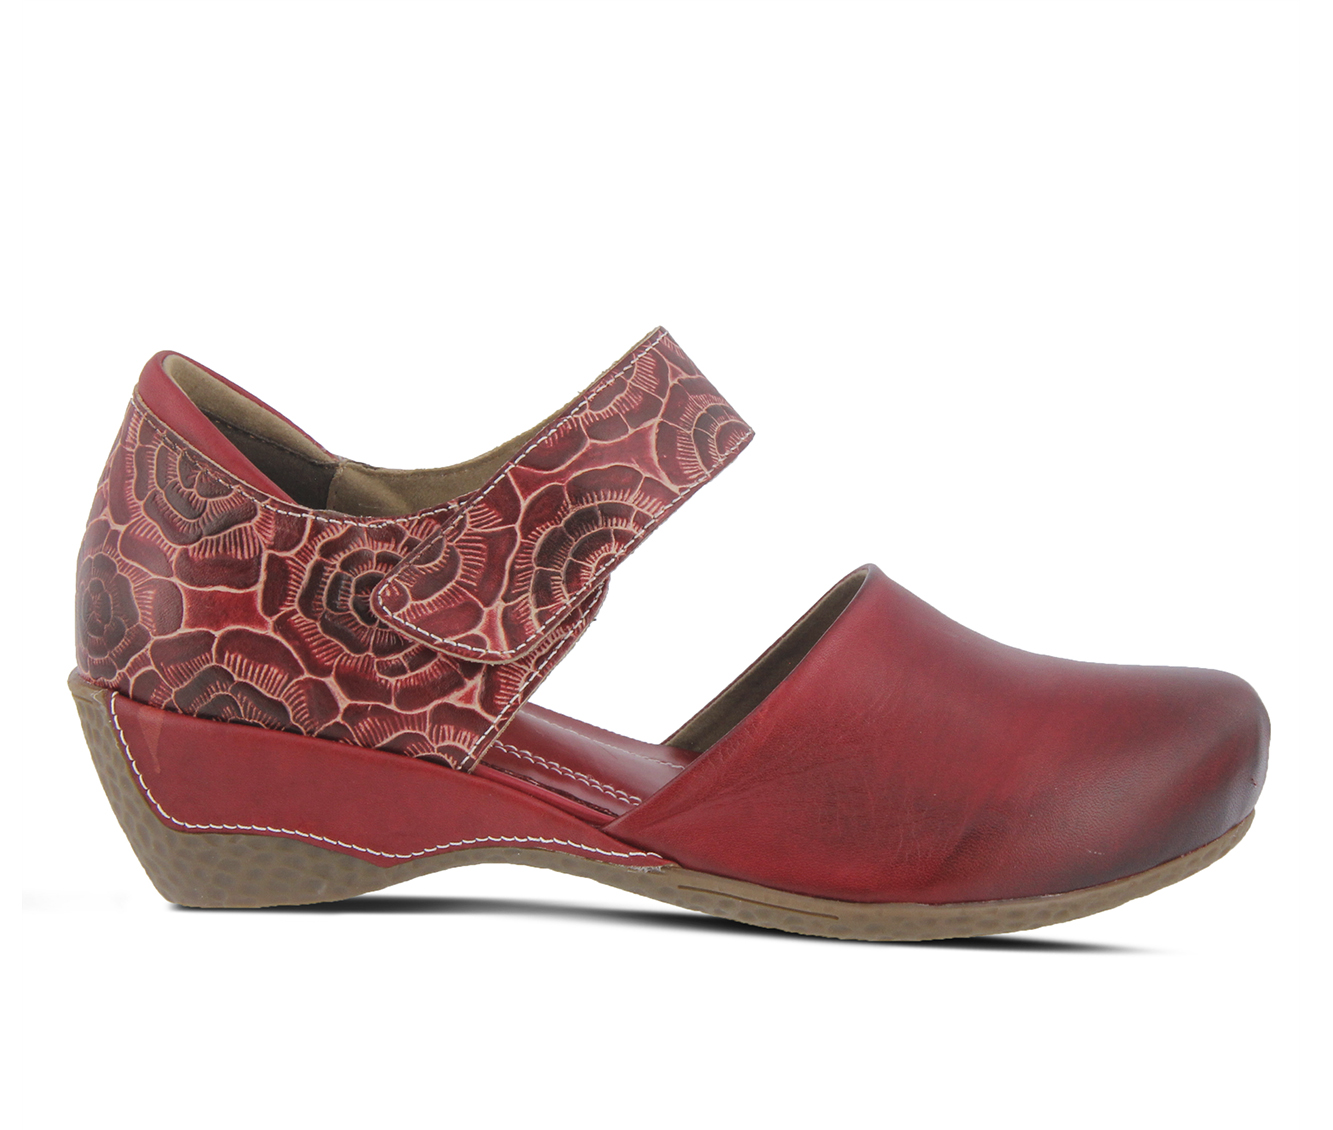 L'Artiste Gloss-Pansy Women's Shoe (Red Leather)